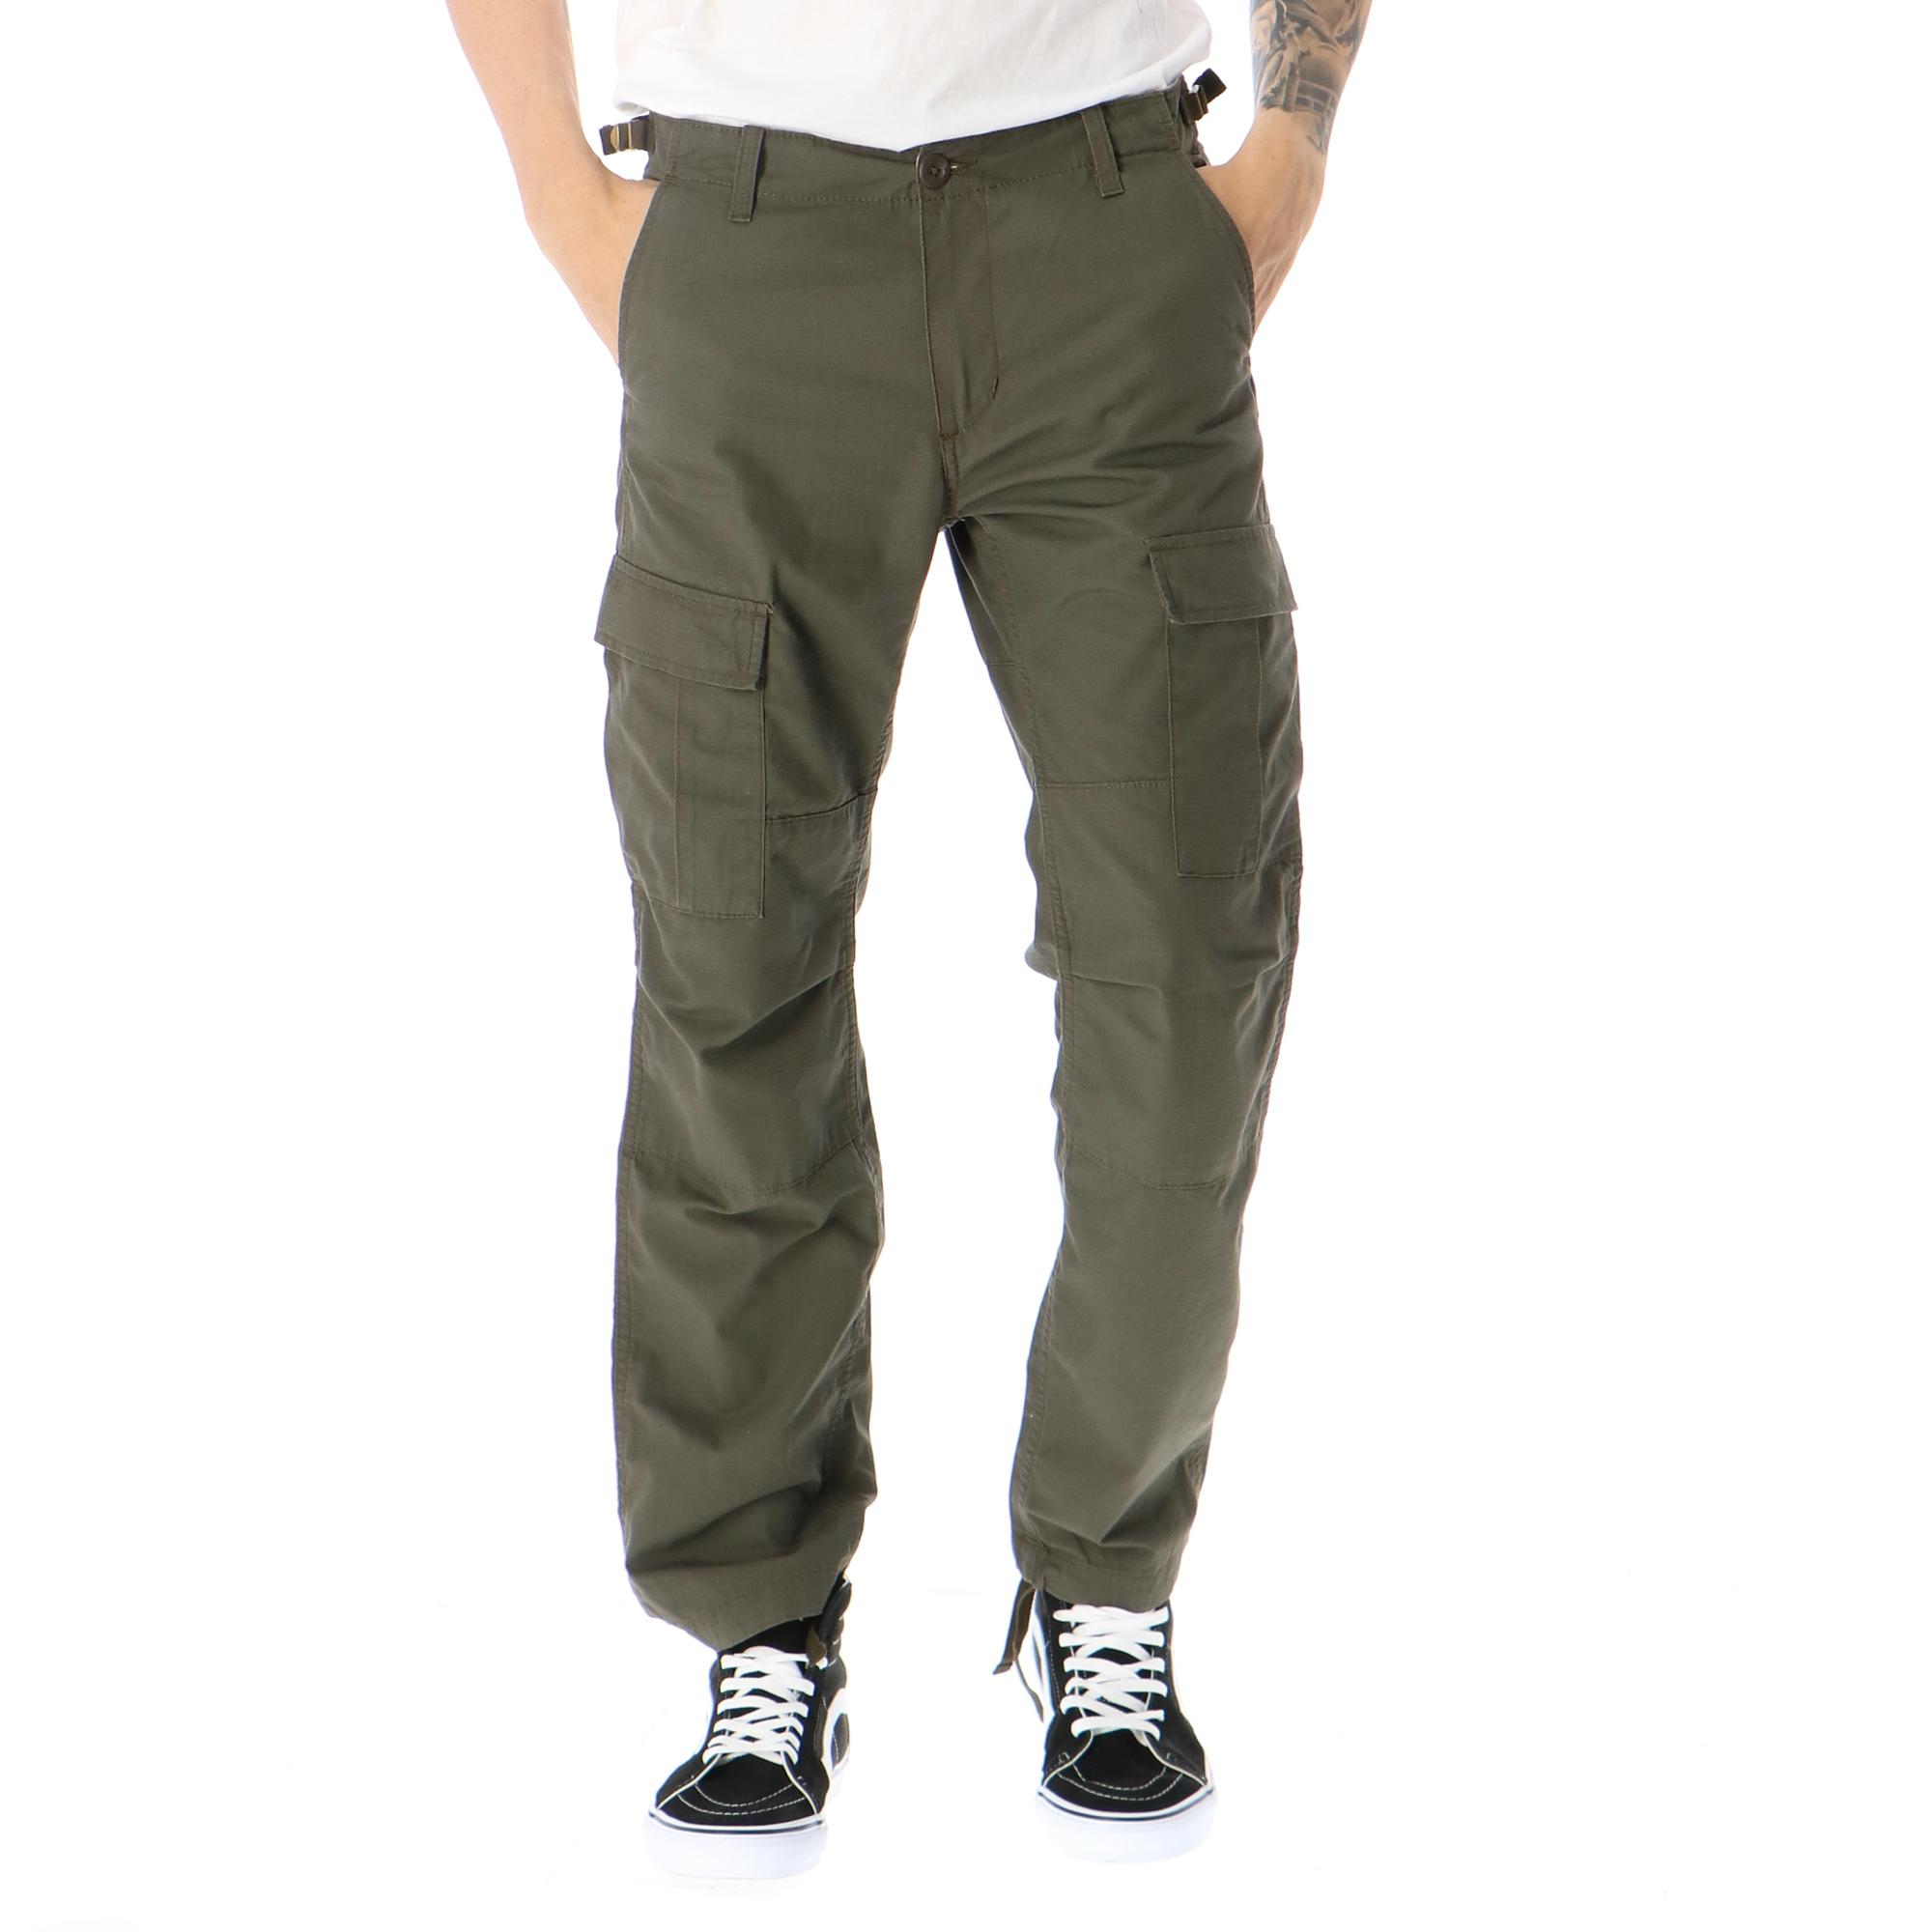 Carhartt Aviation Pant Cypress rinsed